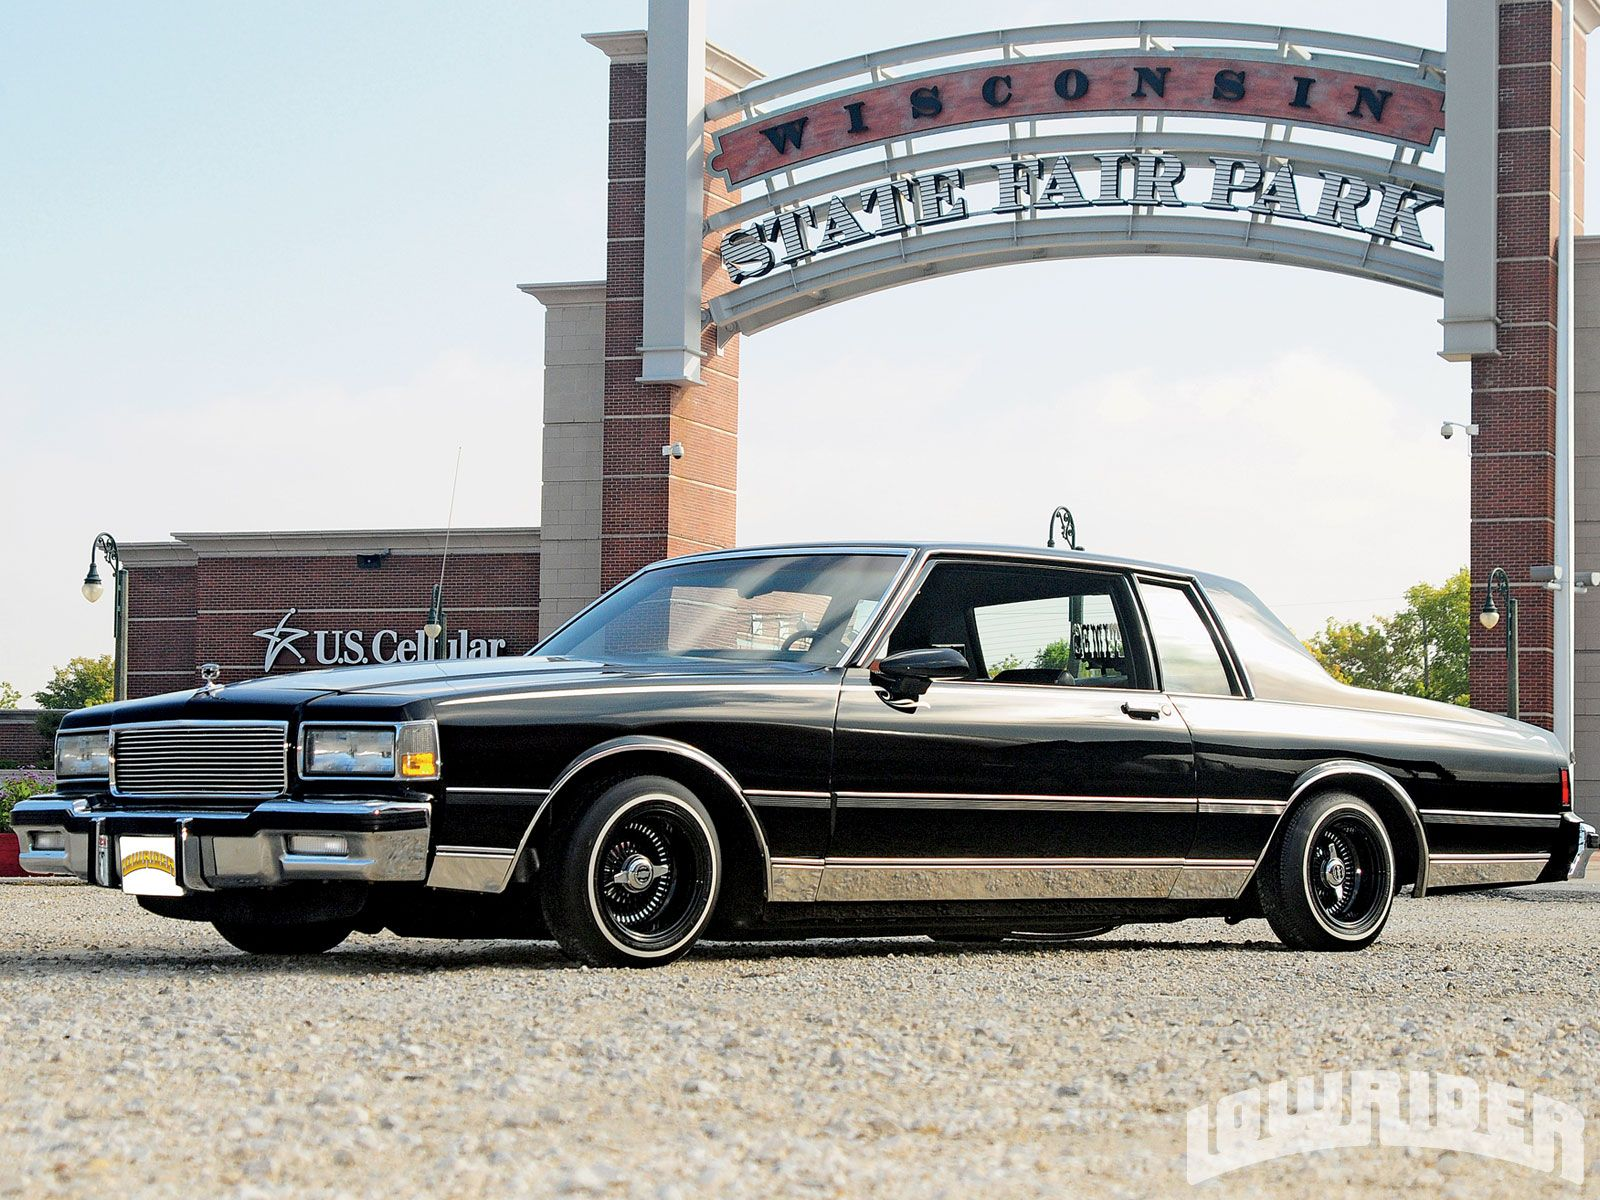 This 93' Cadillac Fleetwood caught my eye. Can you feel me?  Just ballin in this car...